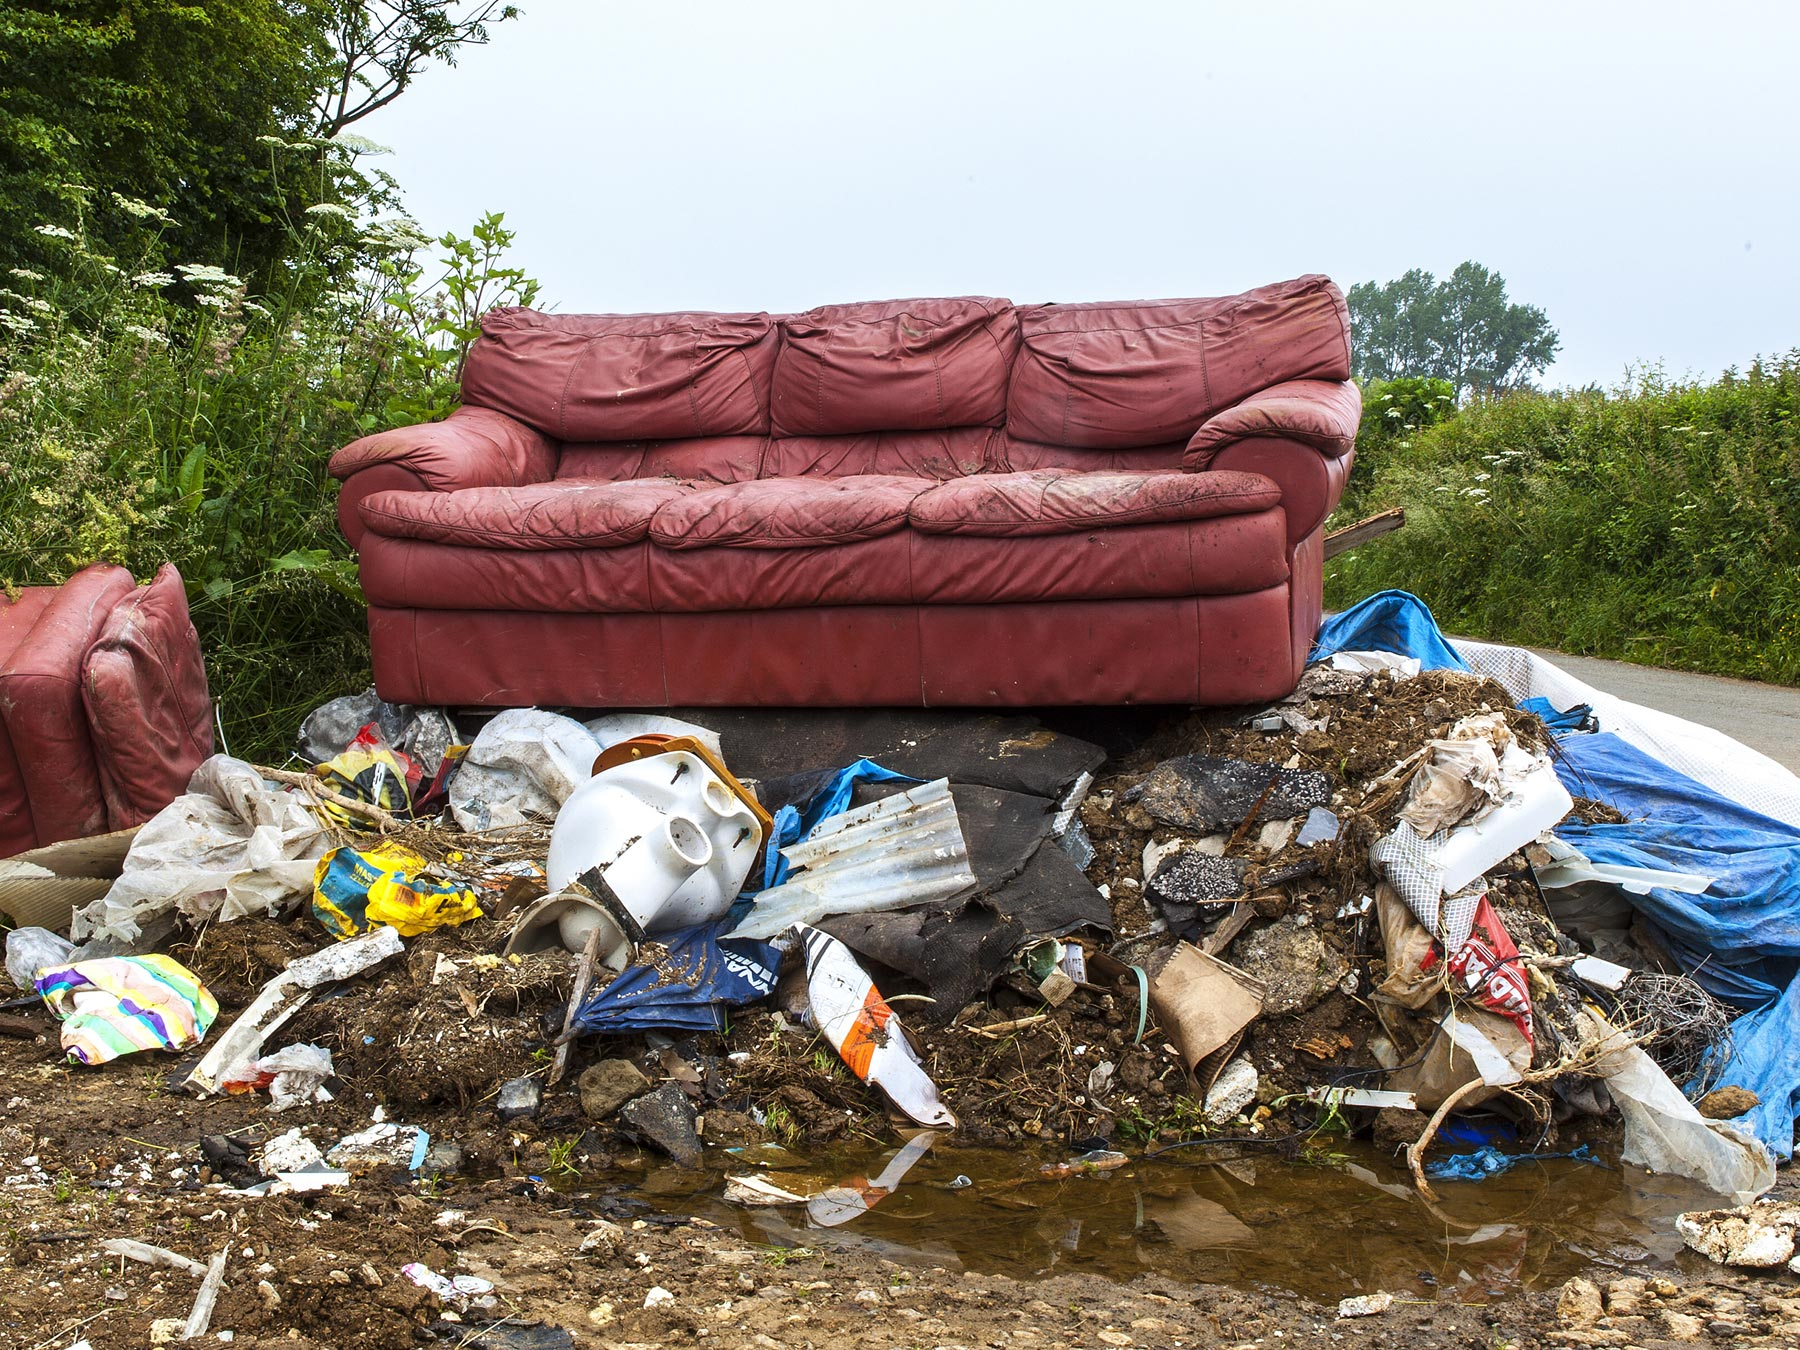 Illegal Dumping Facts and the Consequences of Carelessness